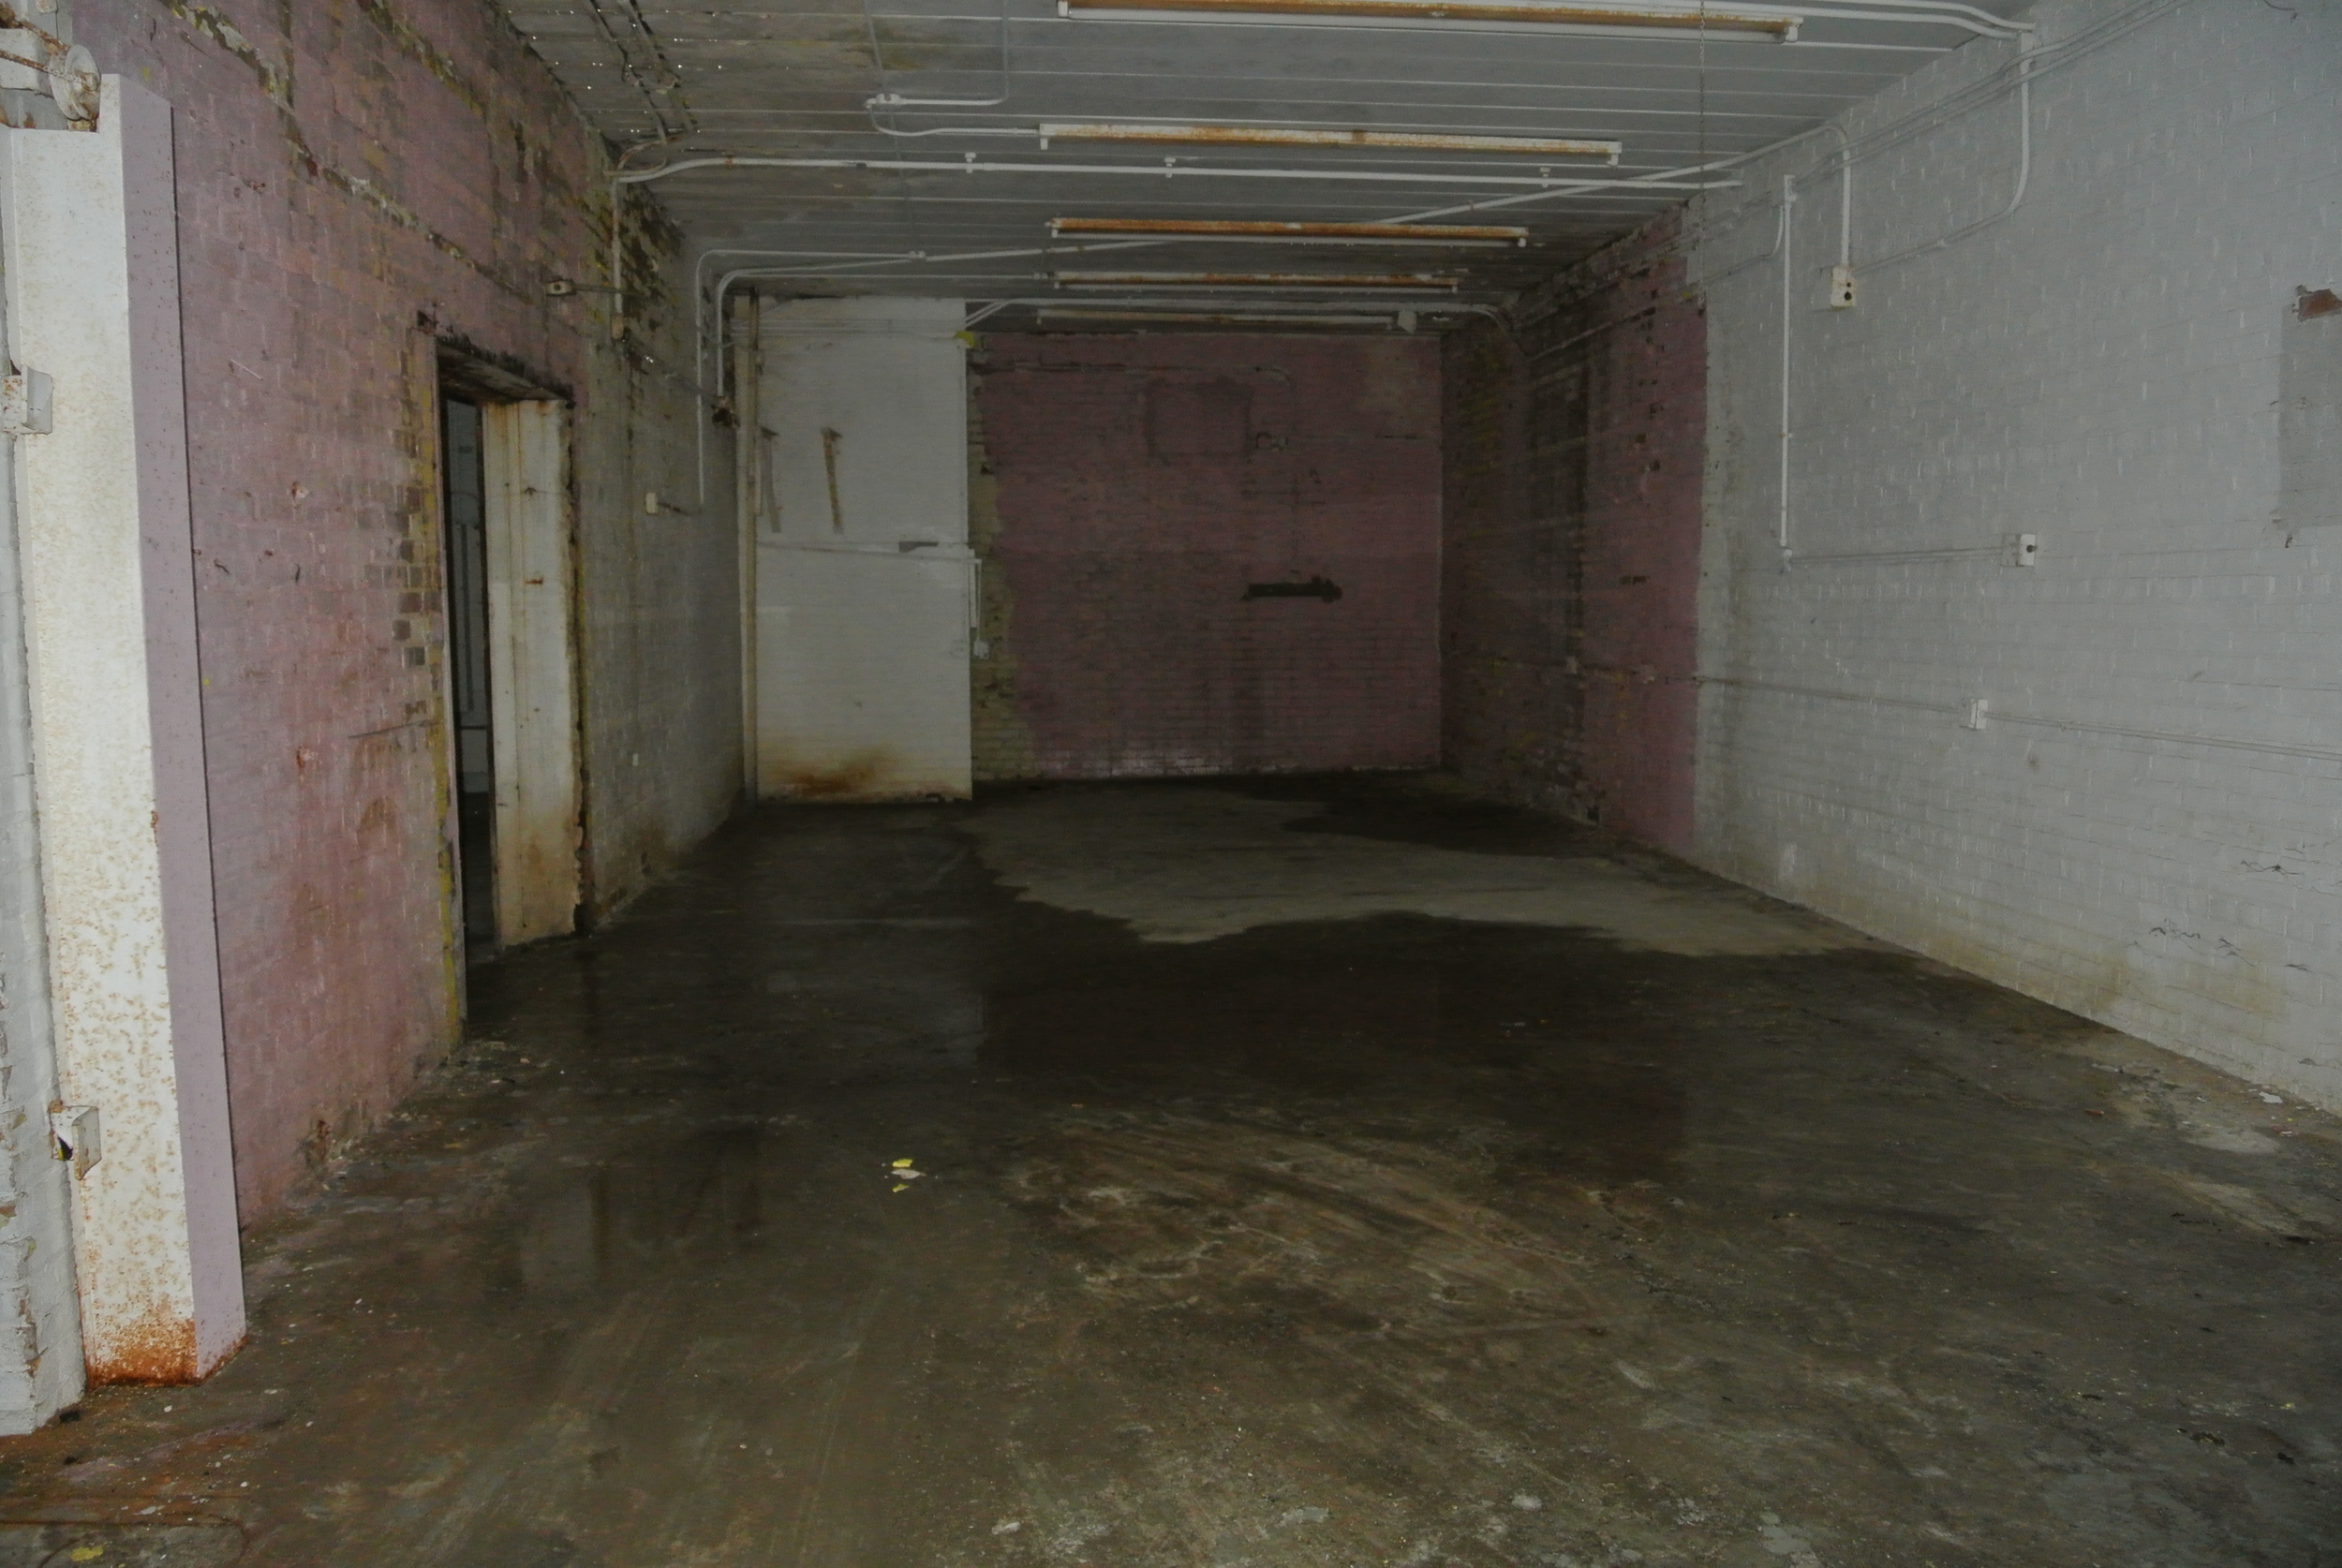 The rather wet, way back room...